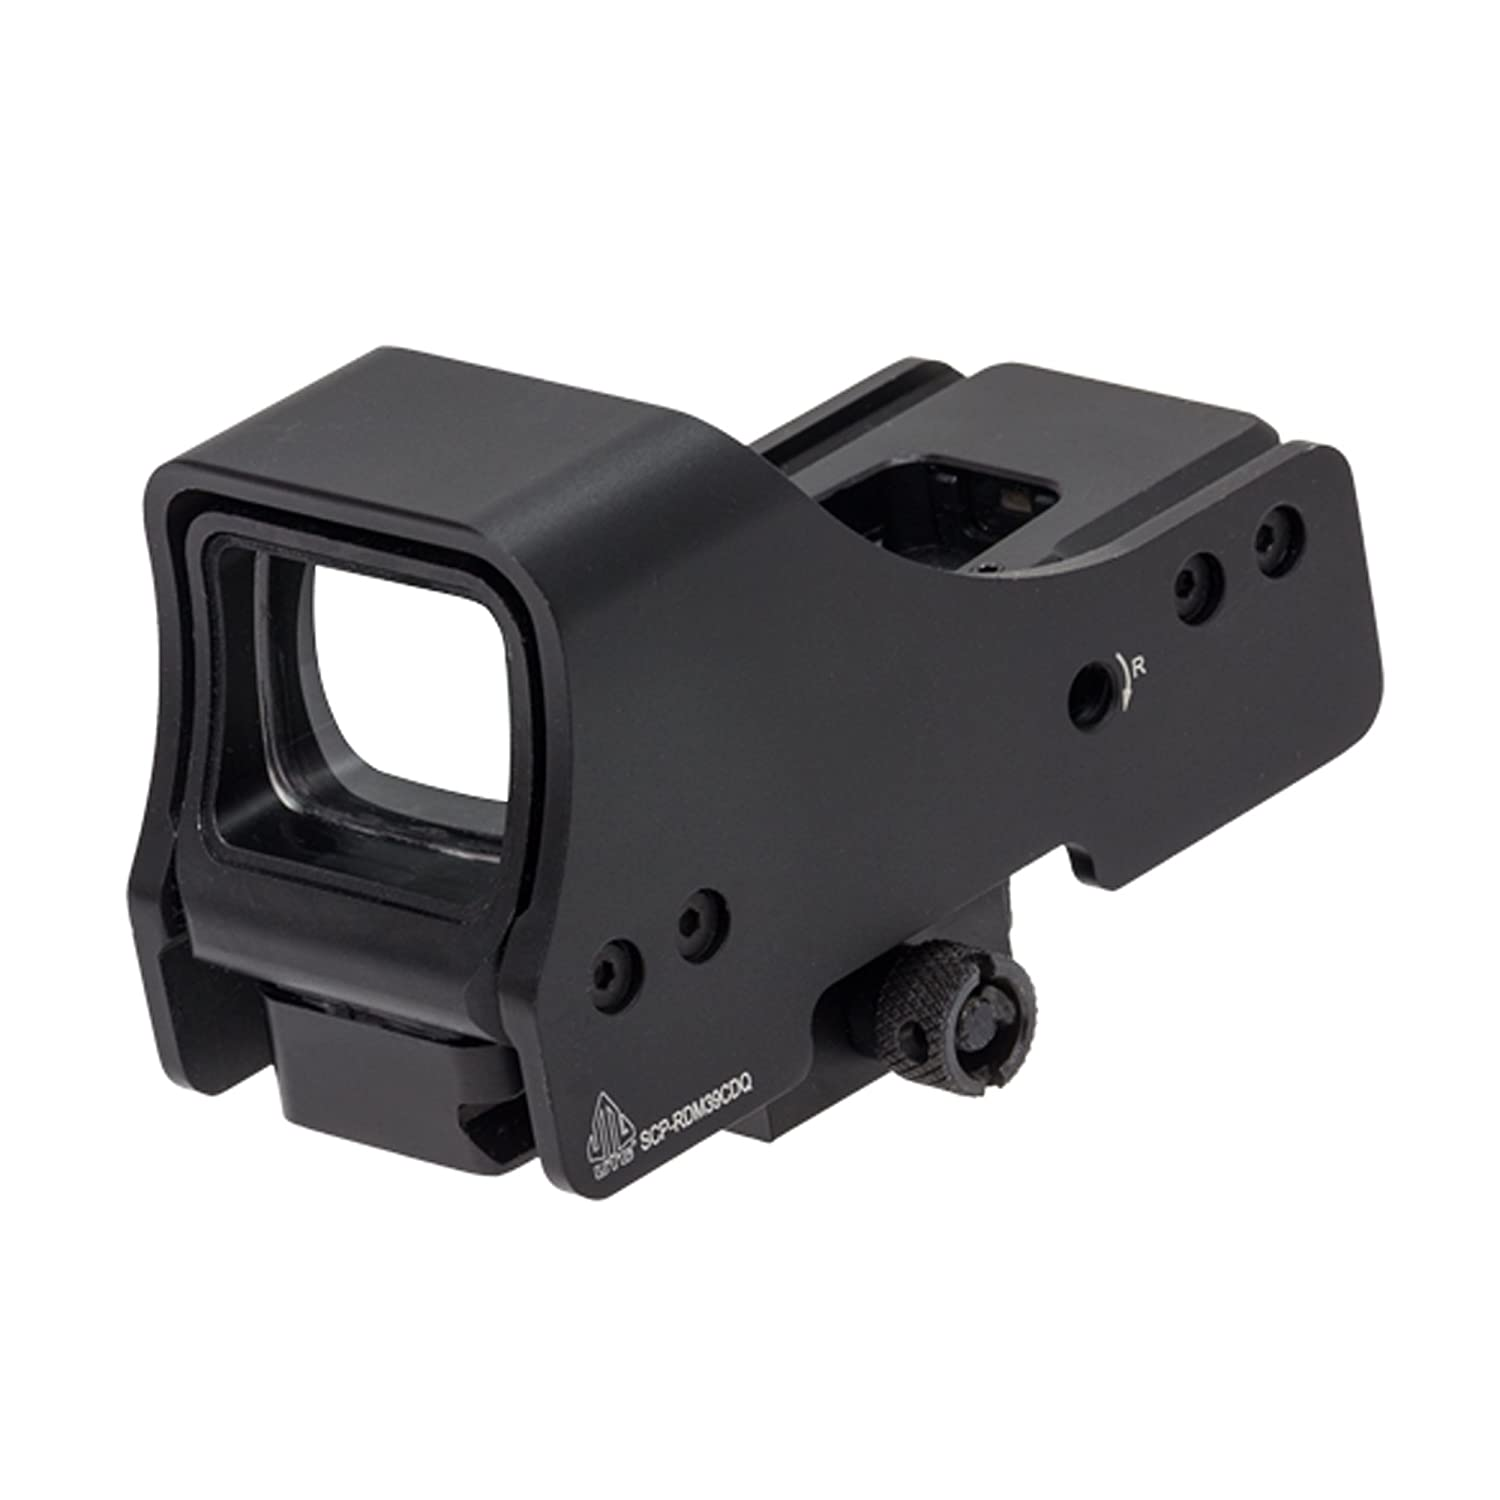 UTG Reflex Sight 3.9 Red/Green Circle Dot Reflex Sight with Mount Leapers Inc. SCP-RDM39CDQ